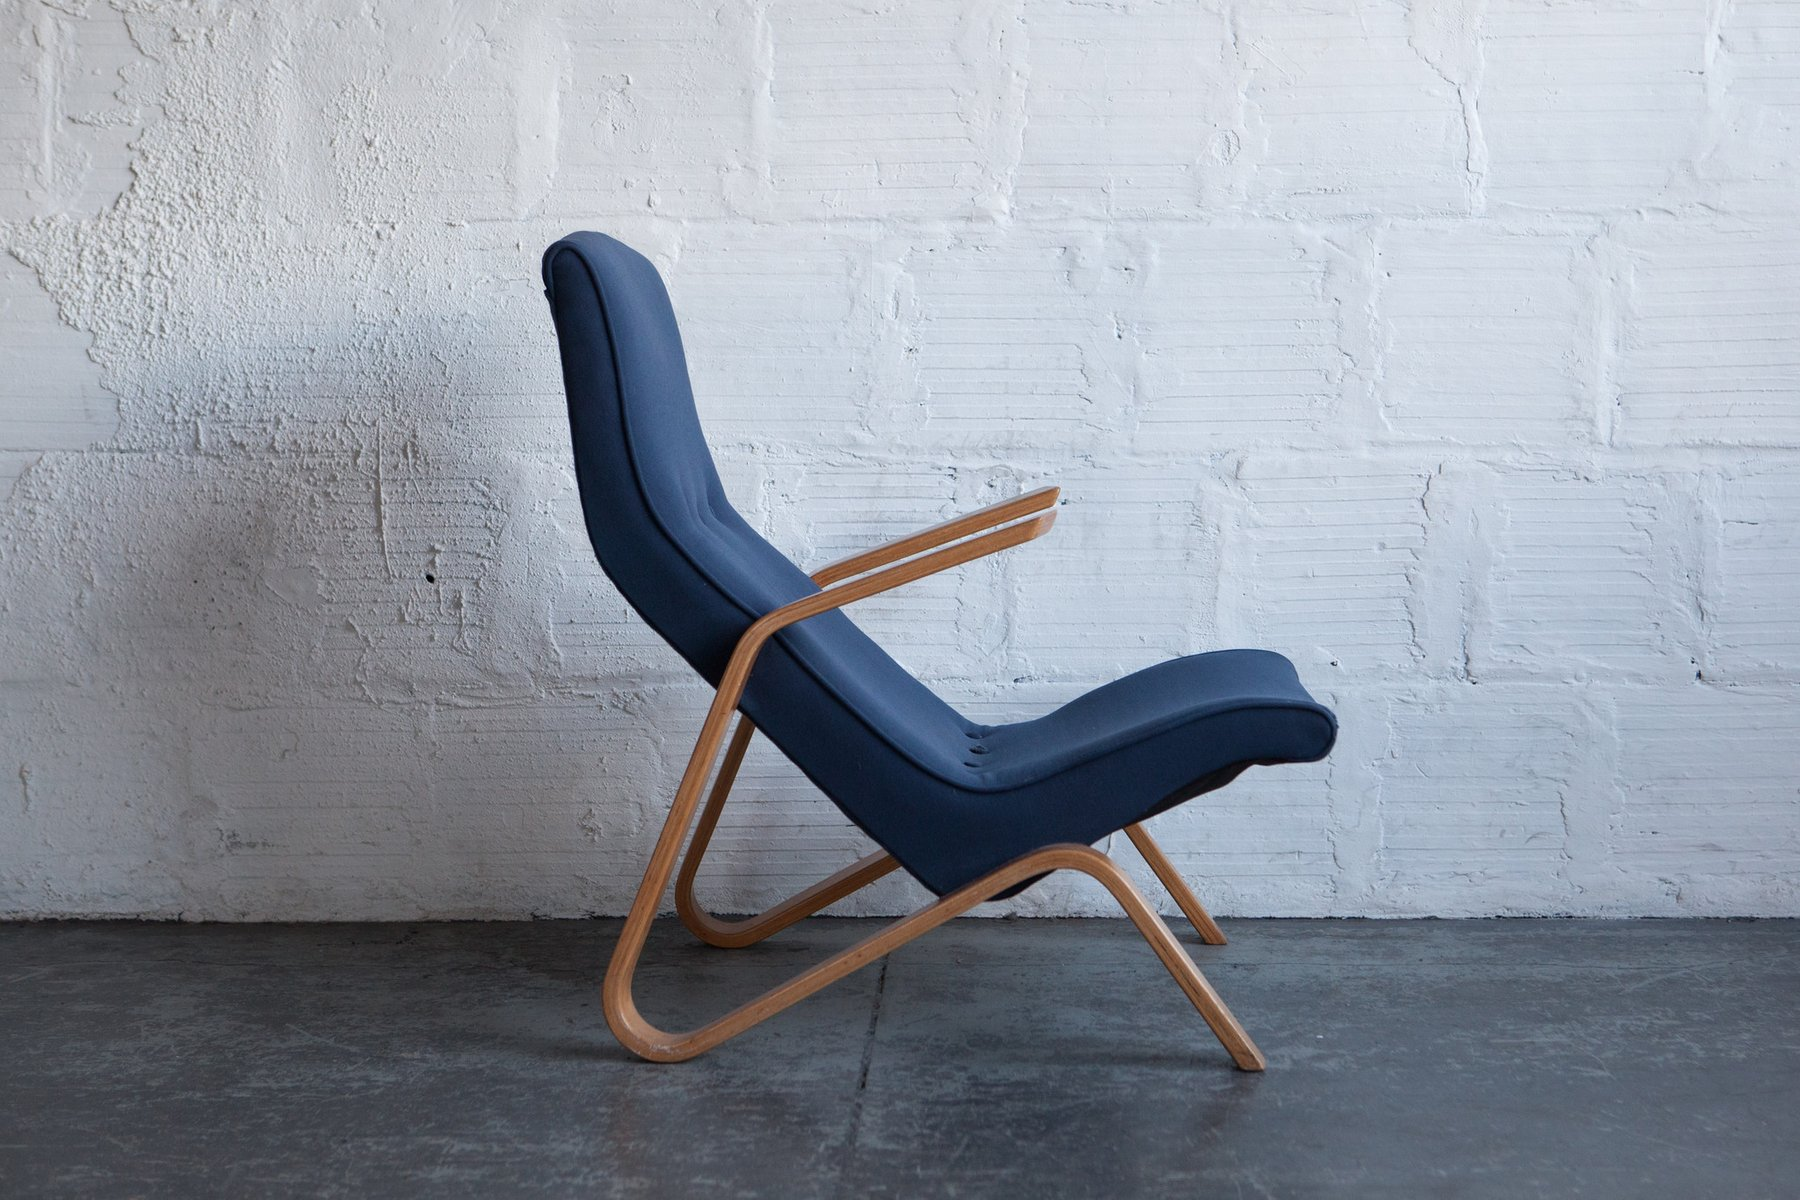 Vintage Grasshopper Chair By Eero Saarinen For Knoll For Sale At Pamono